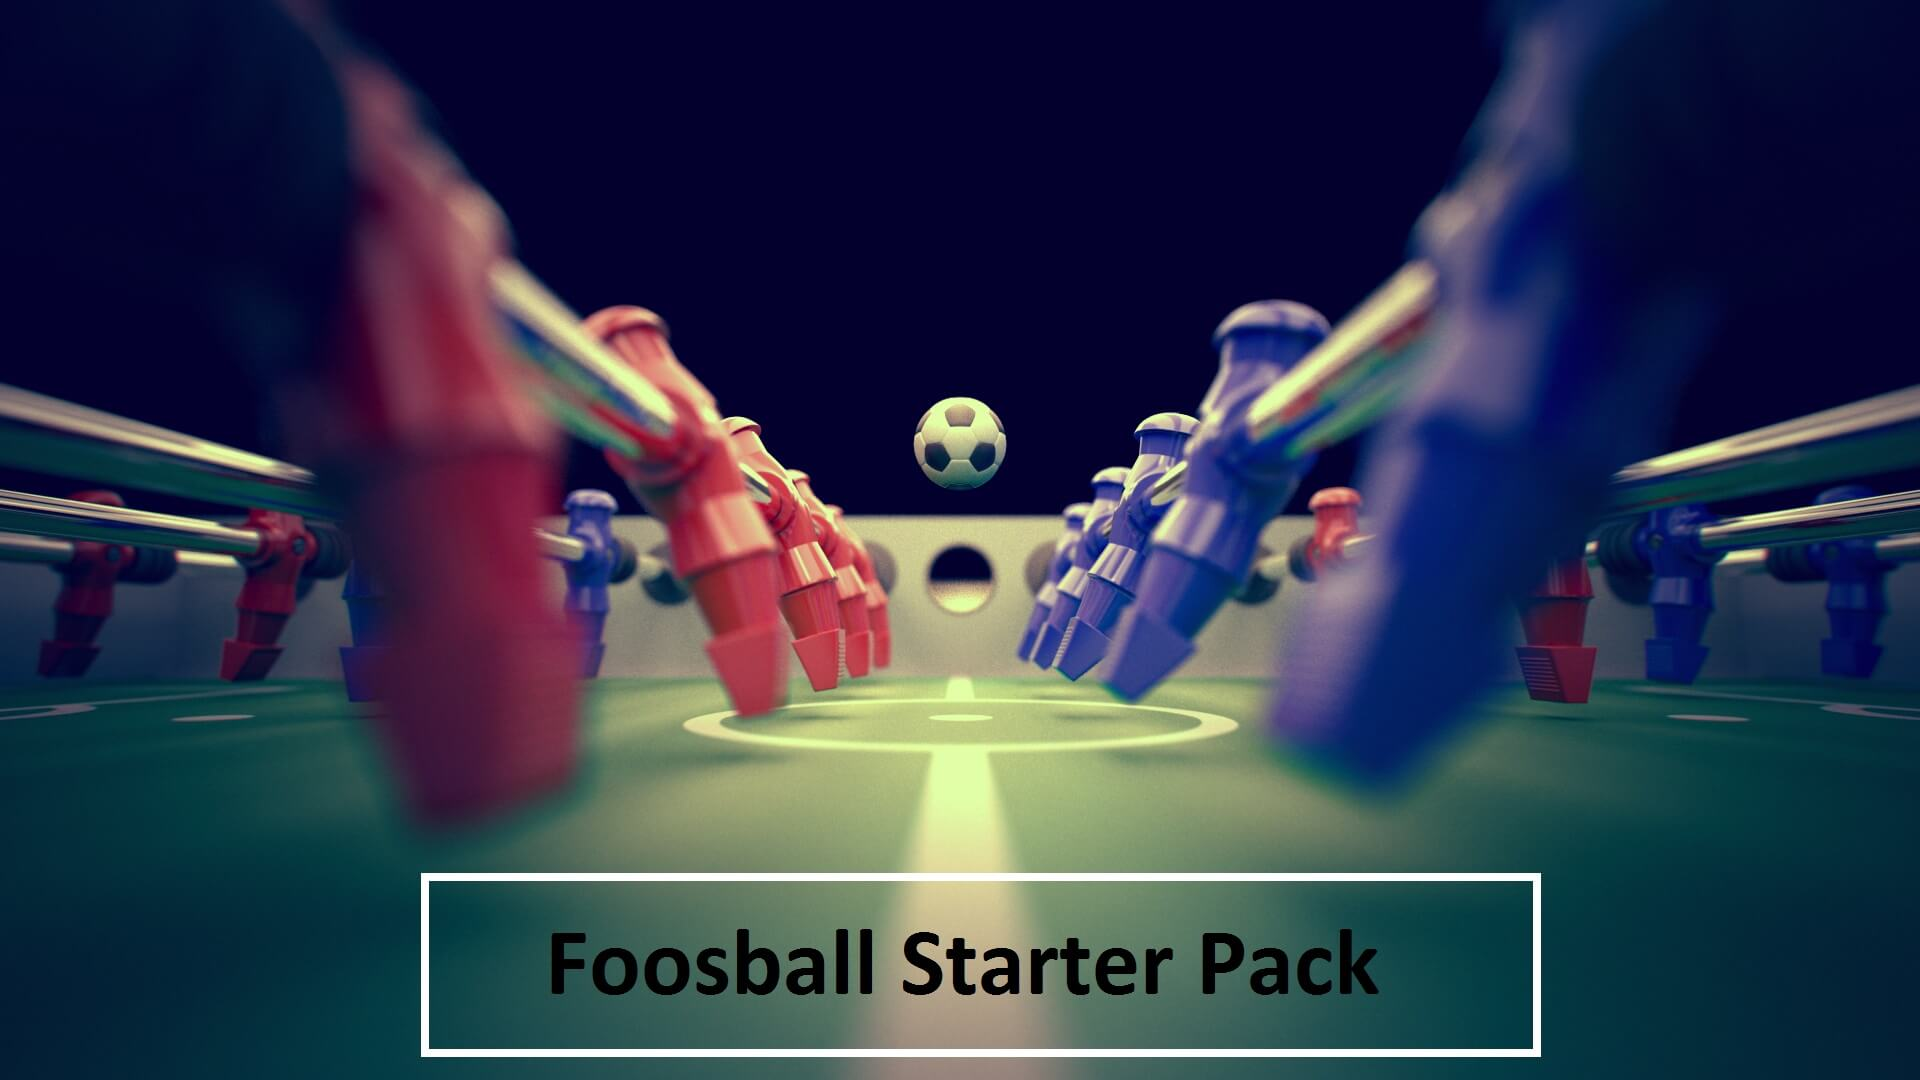 what should every foosball player have